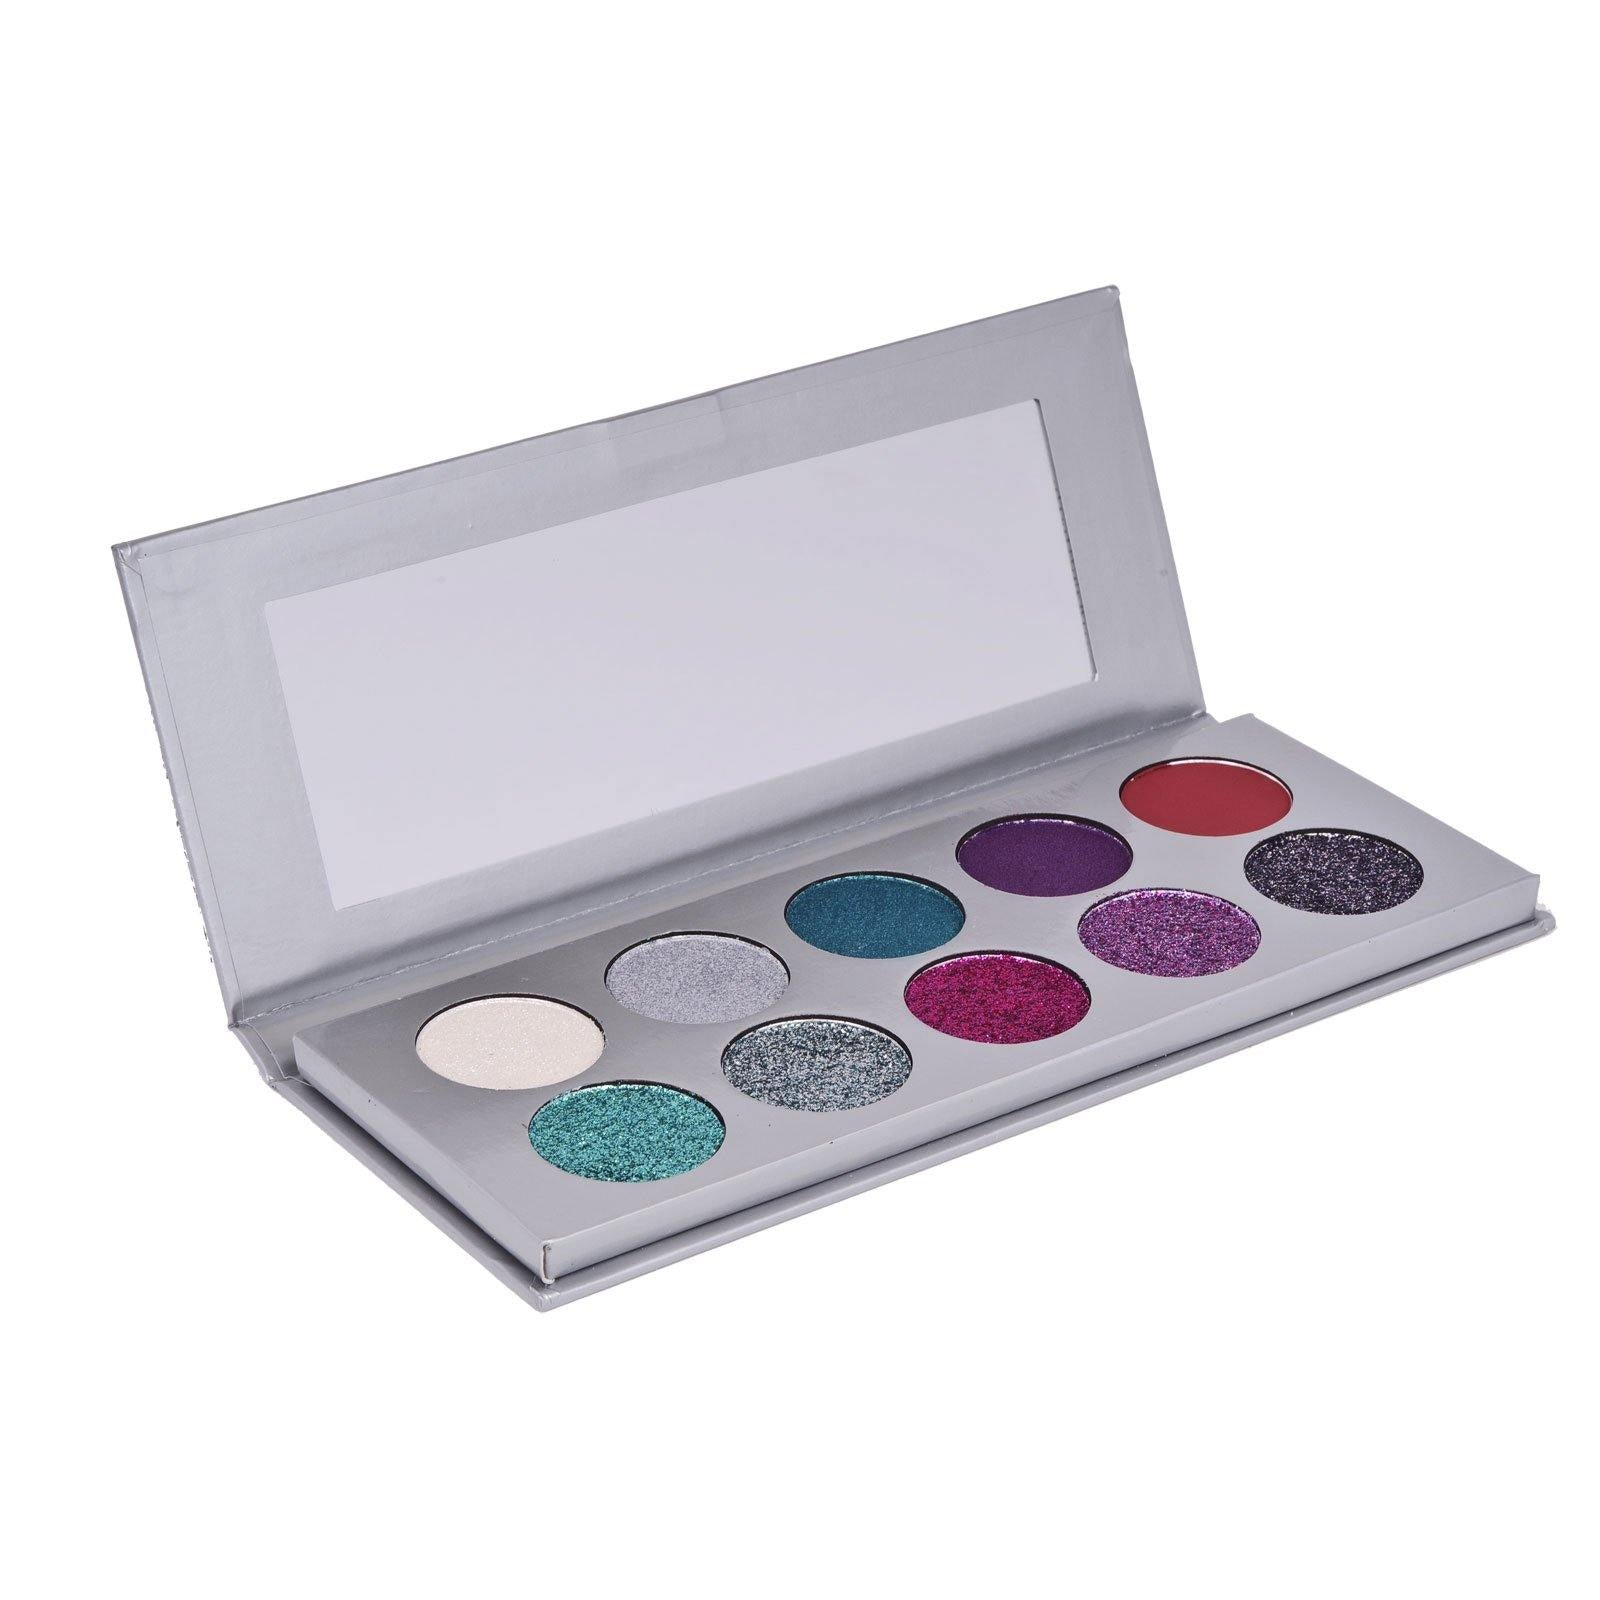 Trend Beauty, Tb10gb , Silver Eyeshadow - Features glitters, shimmers and mattes to create sparkle perfect looks (12/cs)